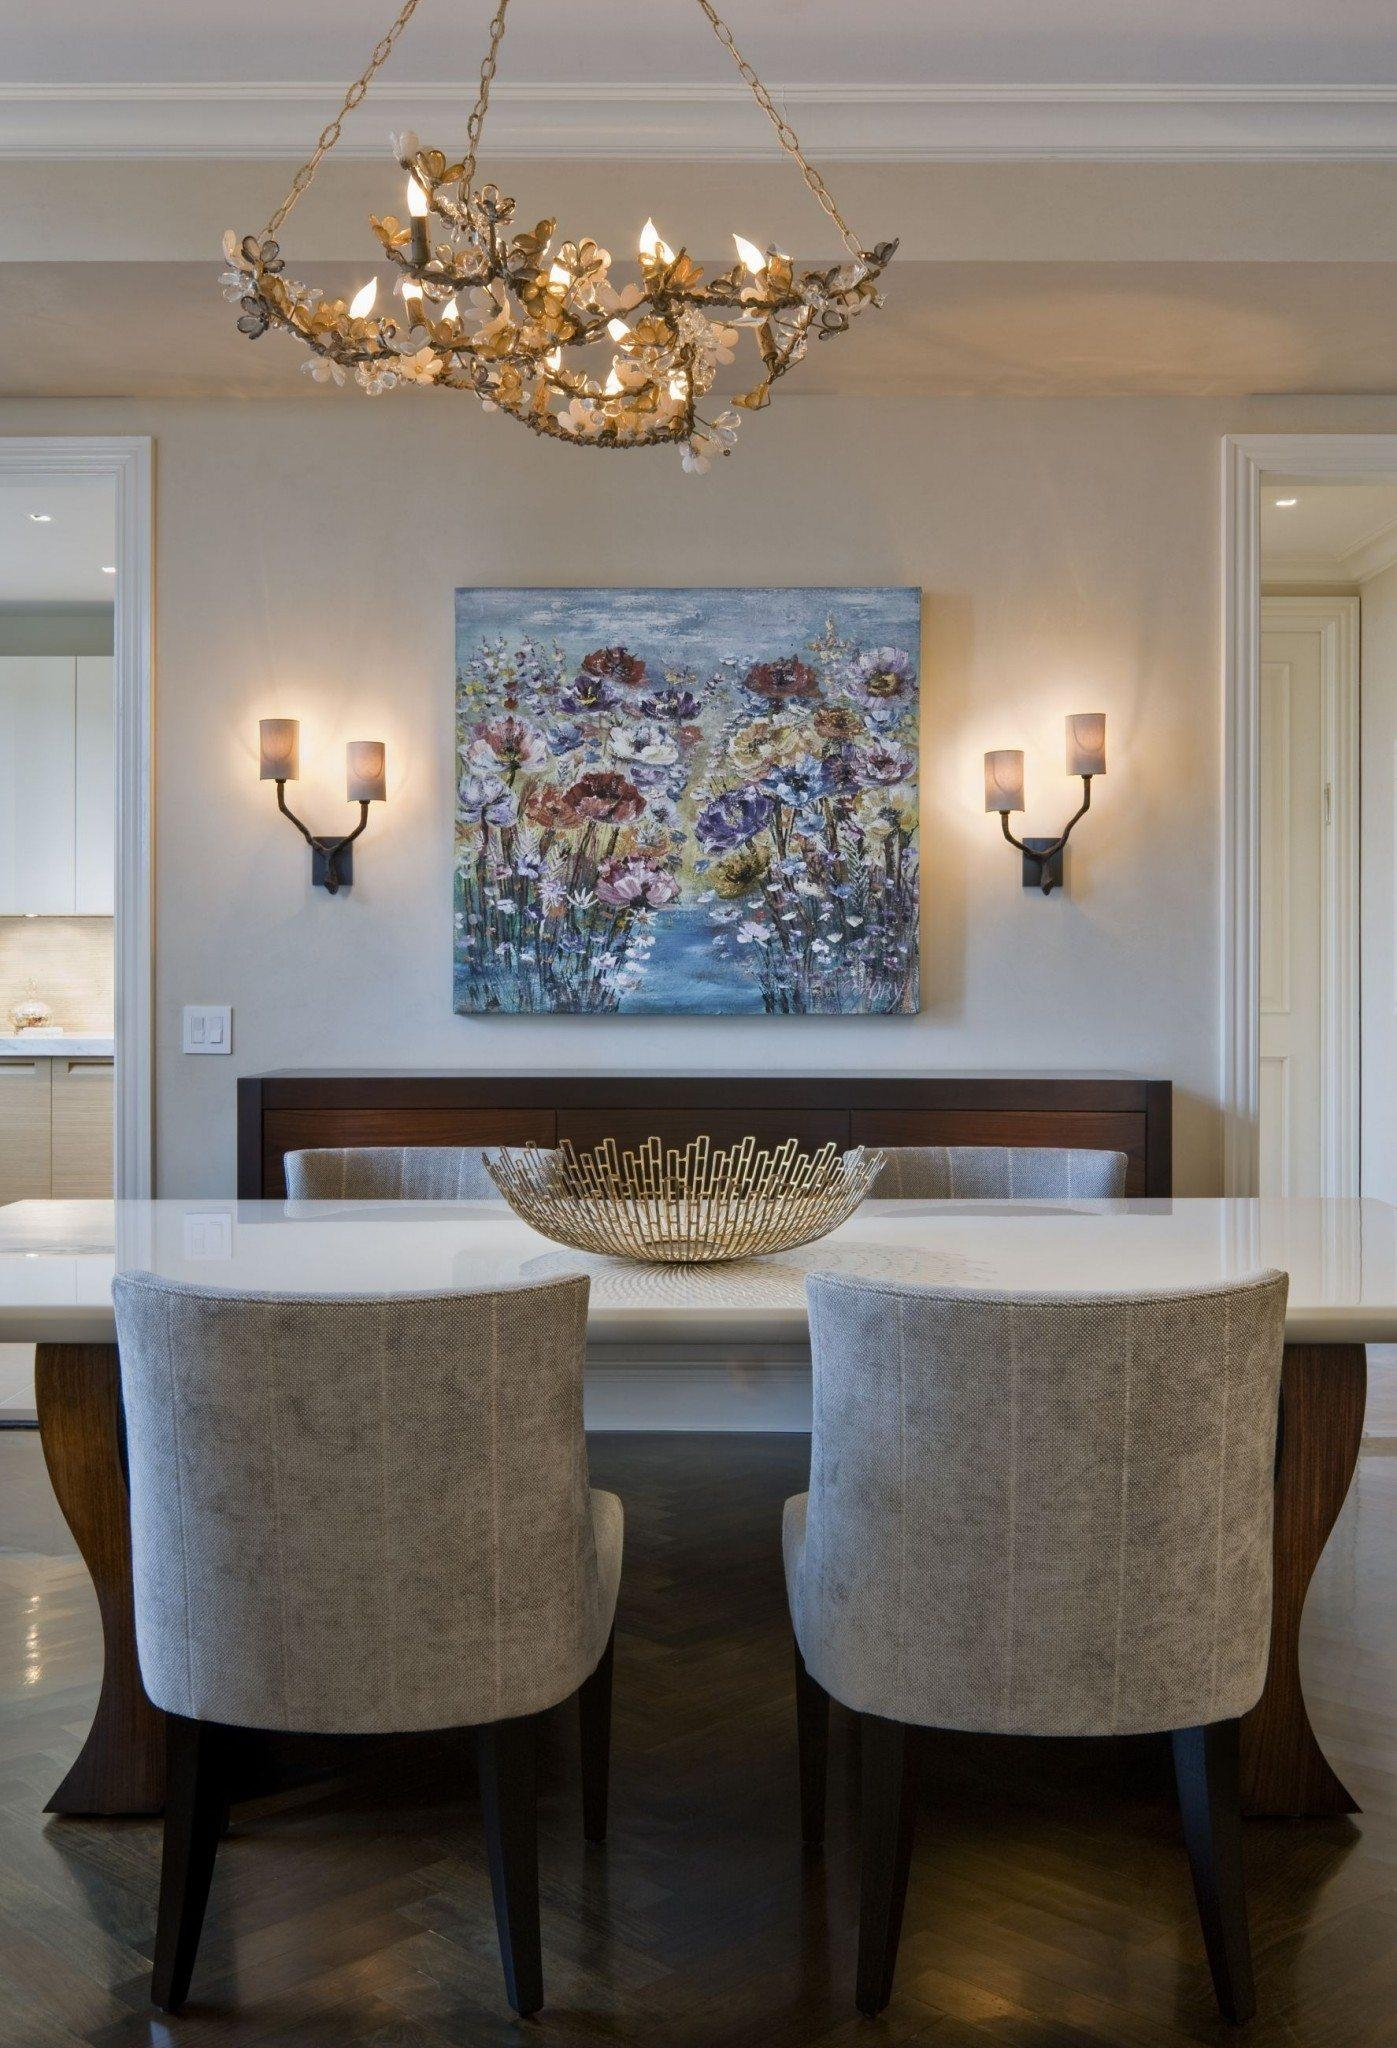 Dining Room With Wall Sconces And Painting Wall Art – Placing With Dining Wall Art (Image 16 of 20)